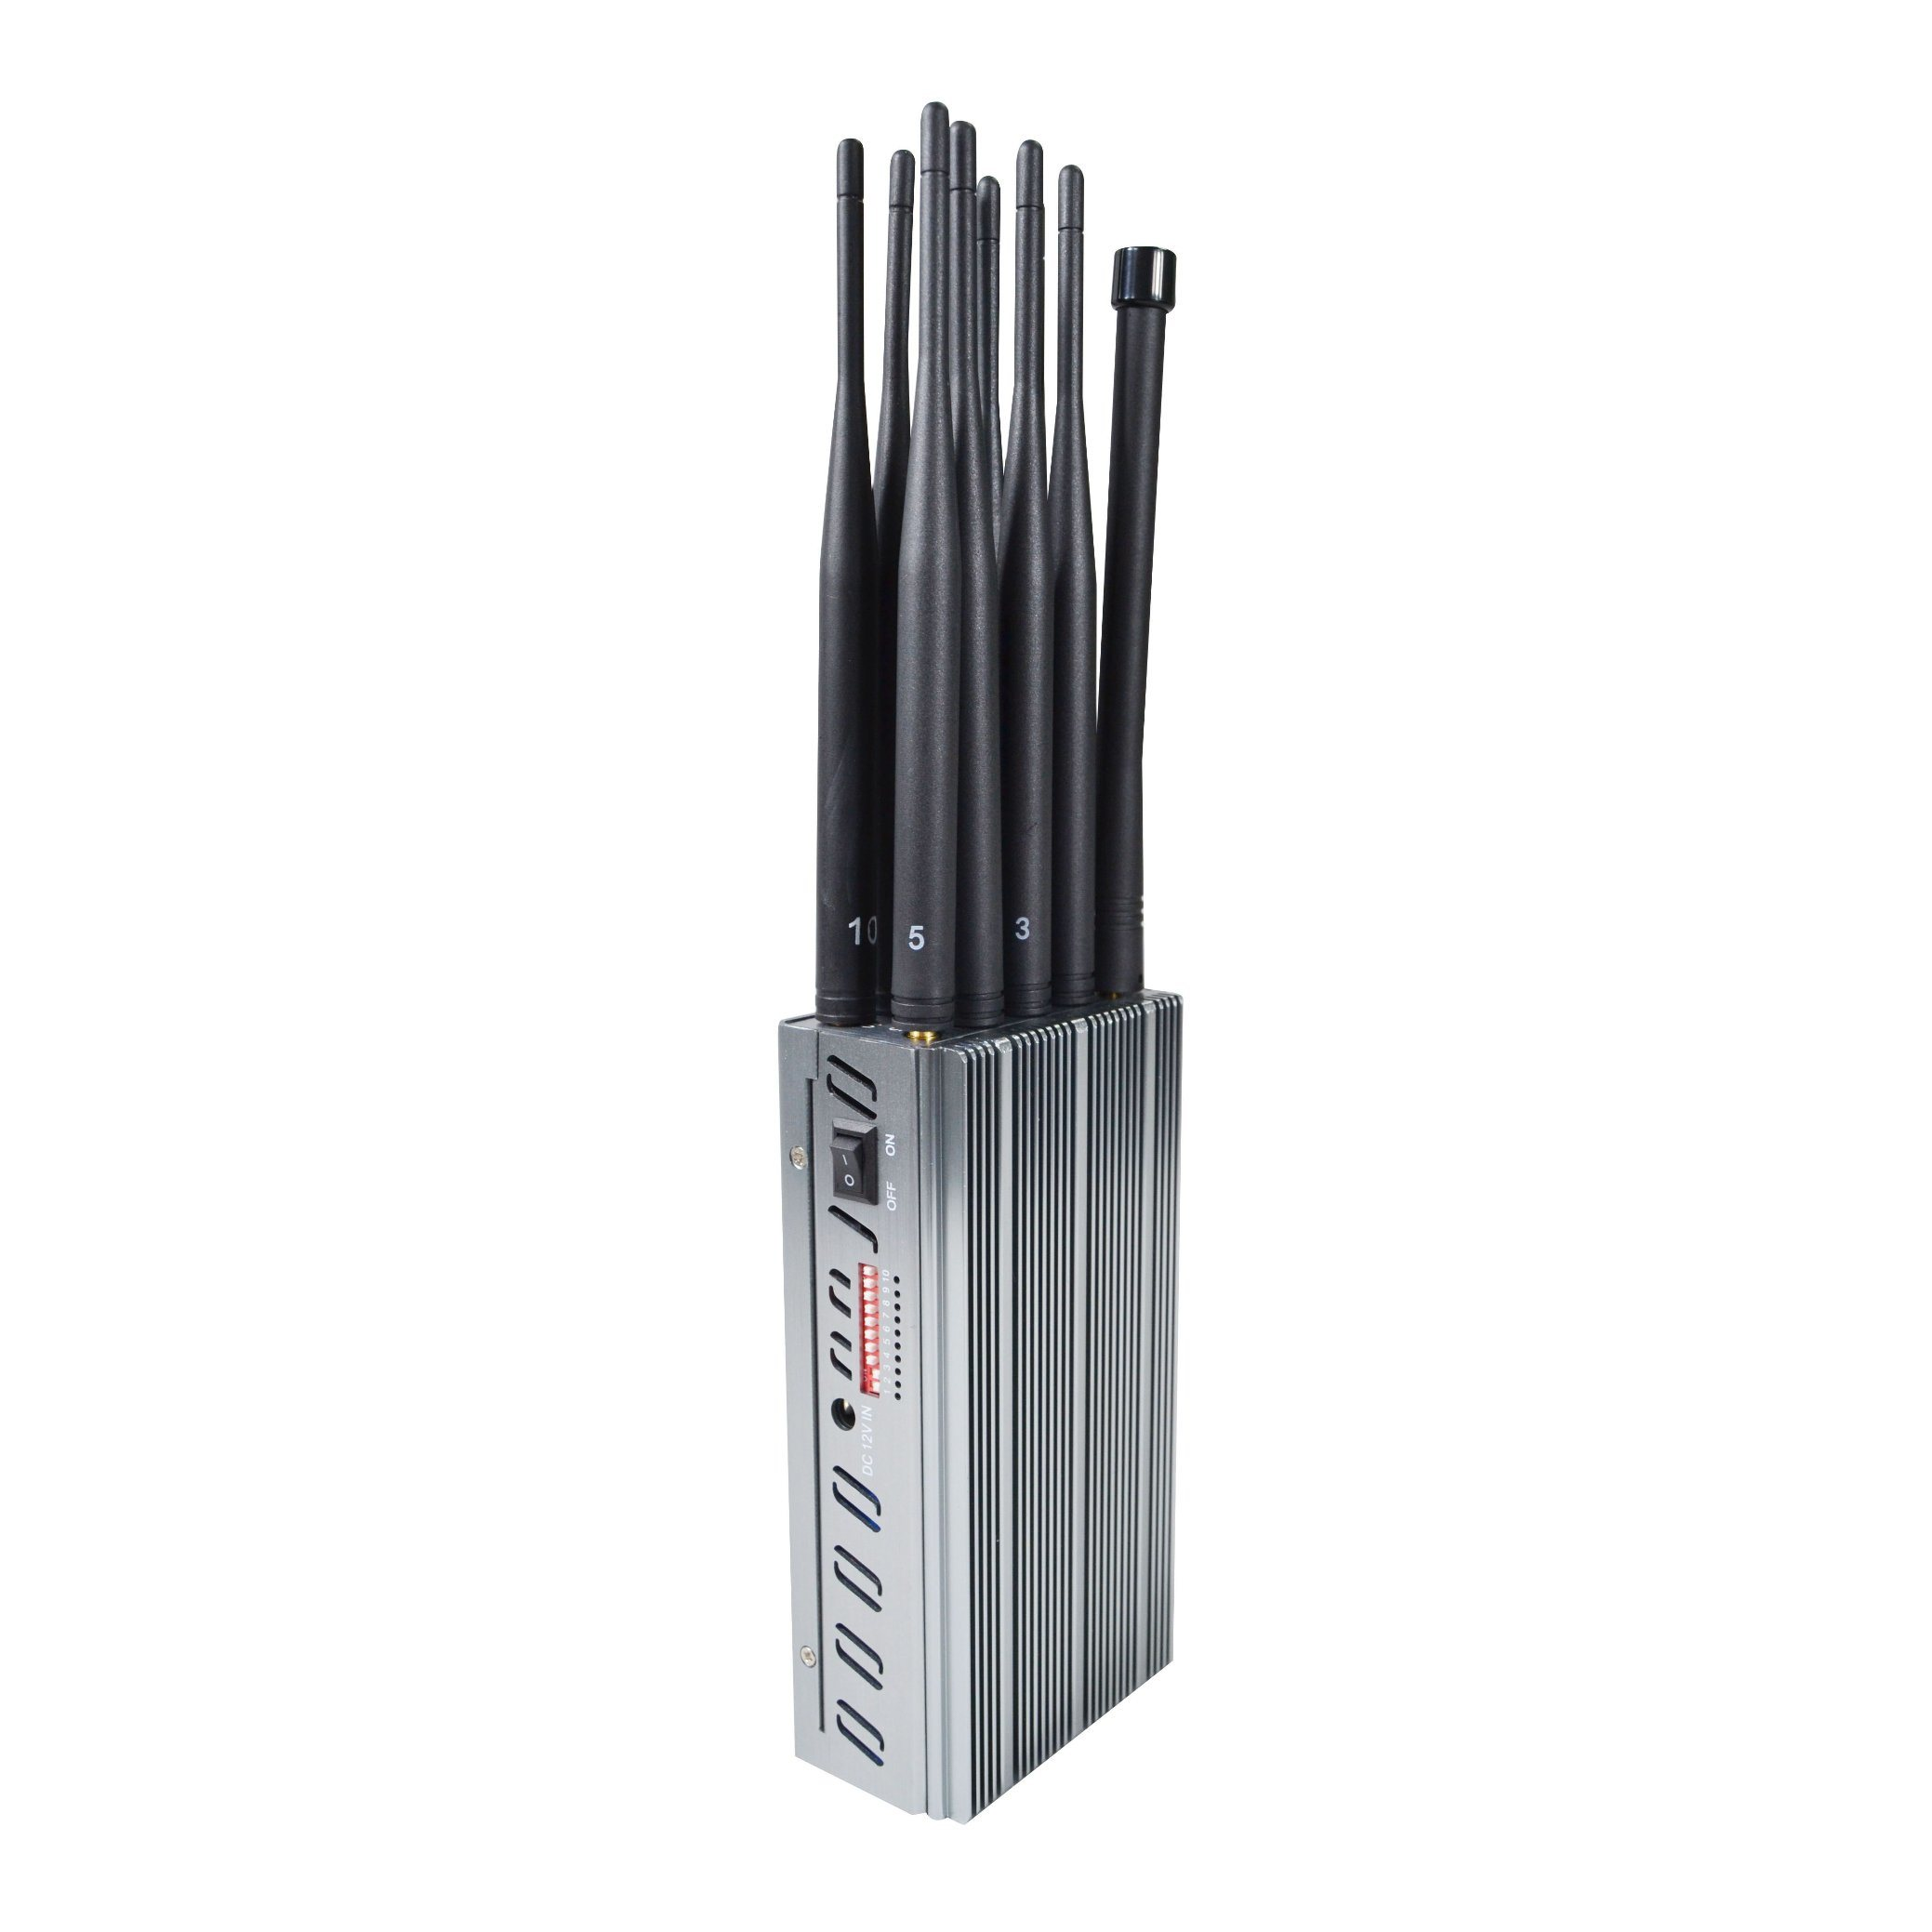 pocket phone jammer from china